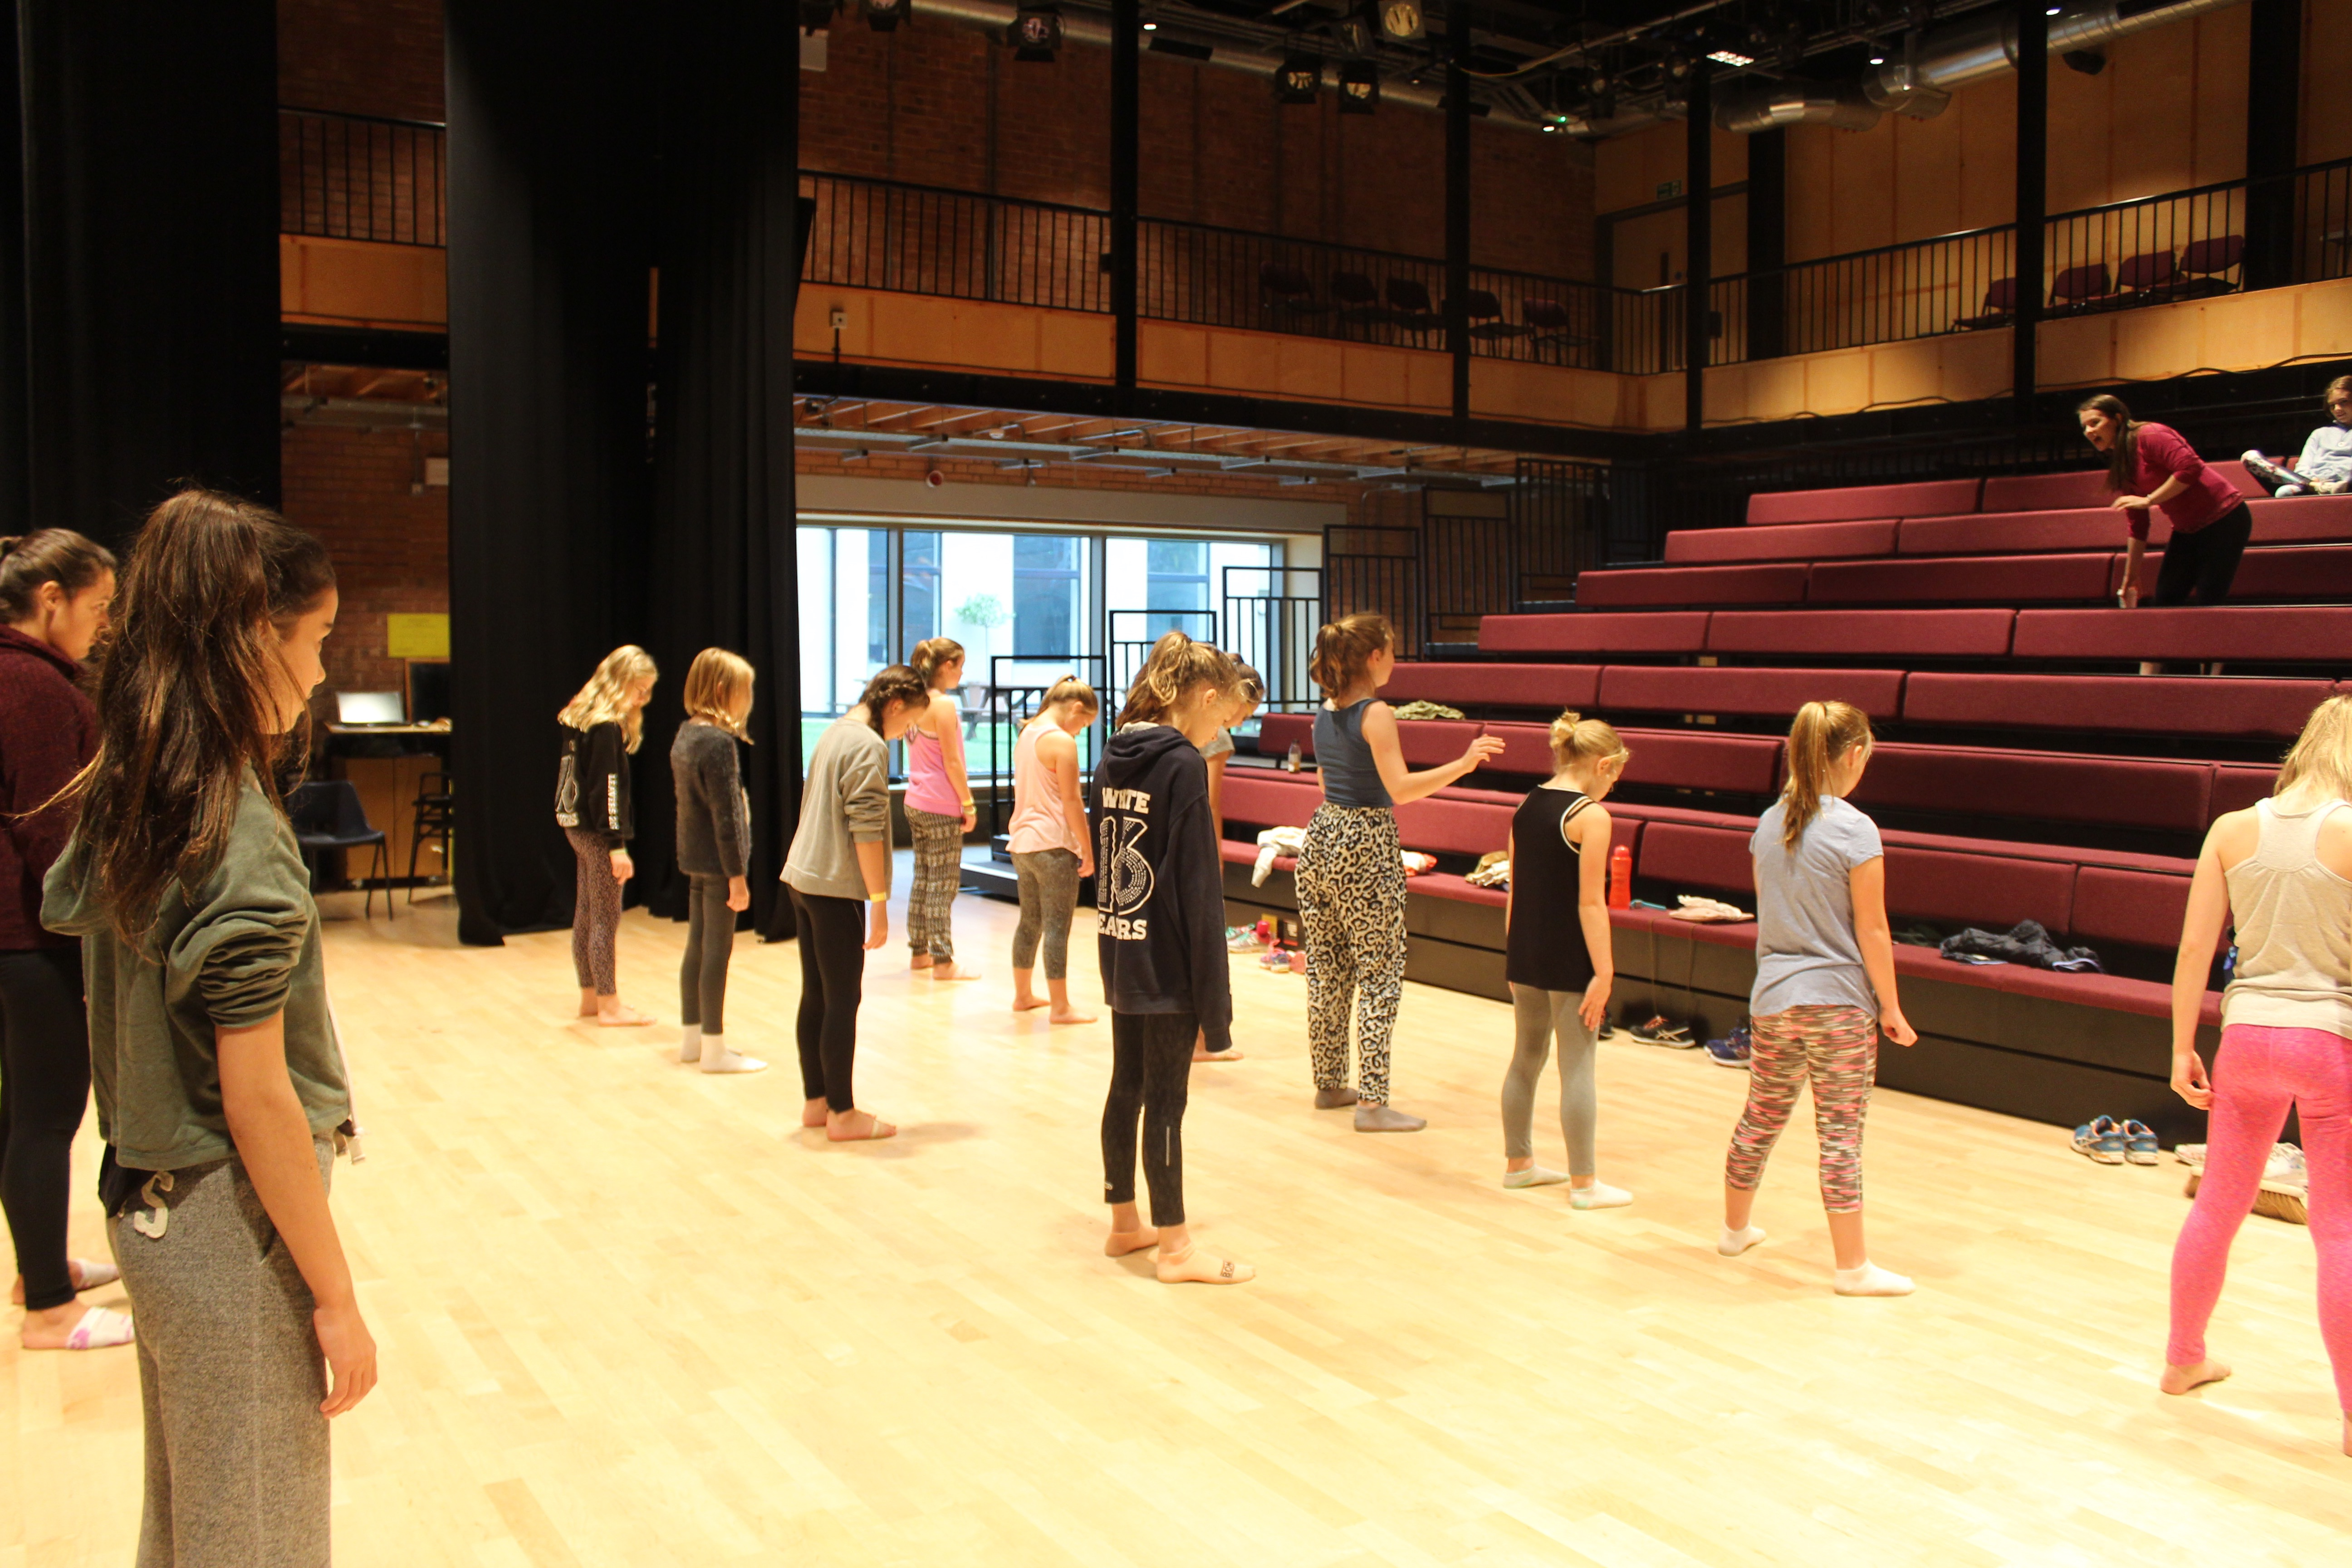 Musical theatre rehearsals